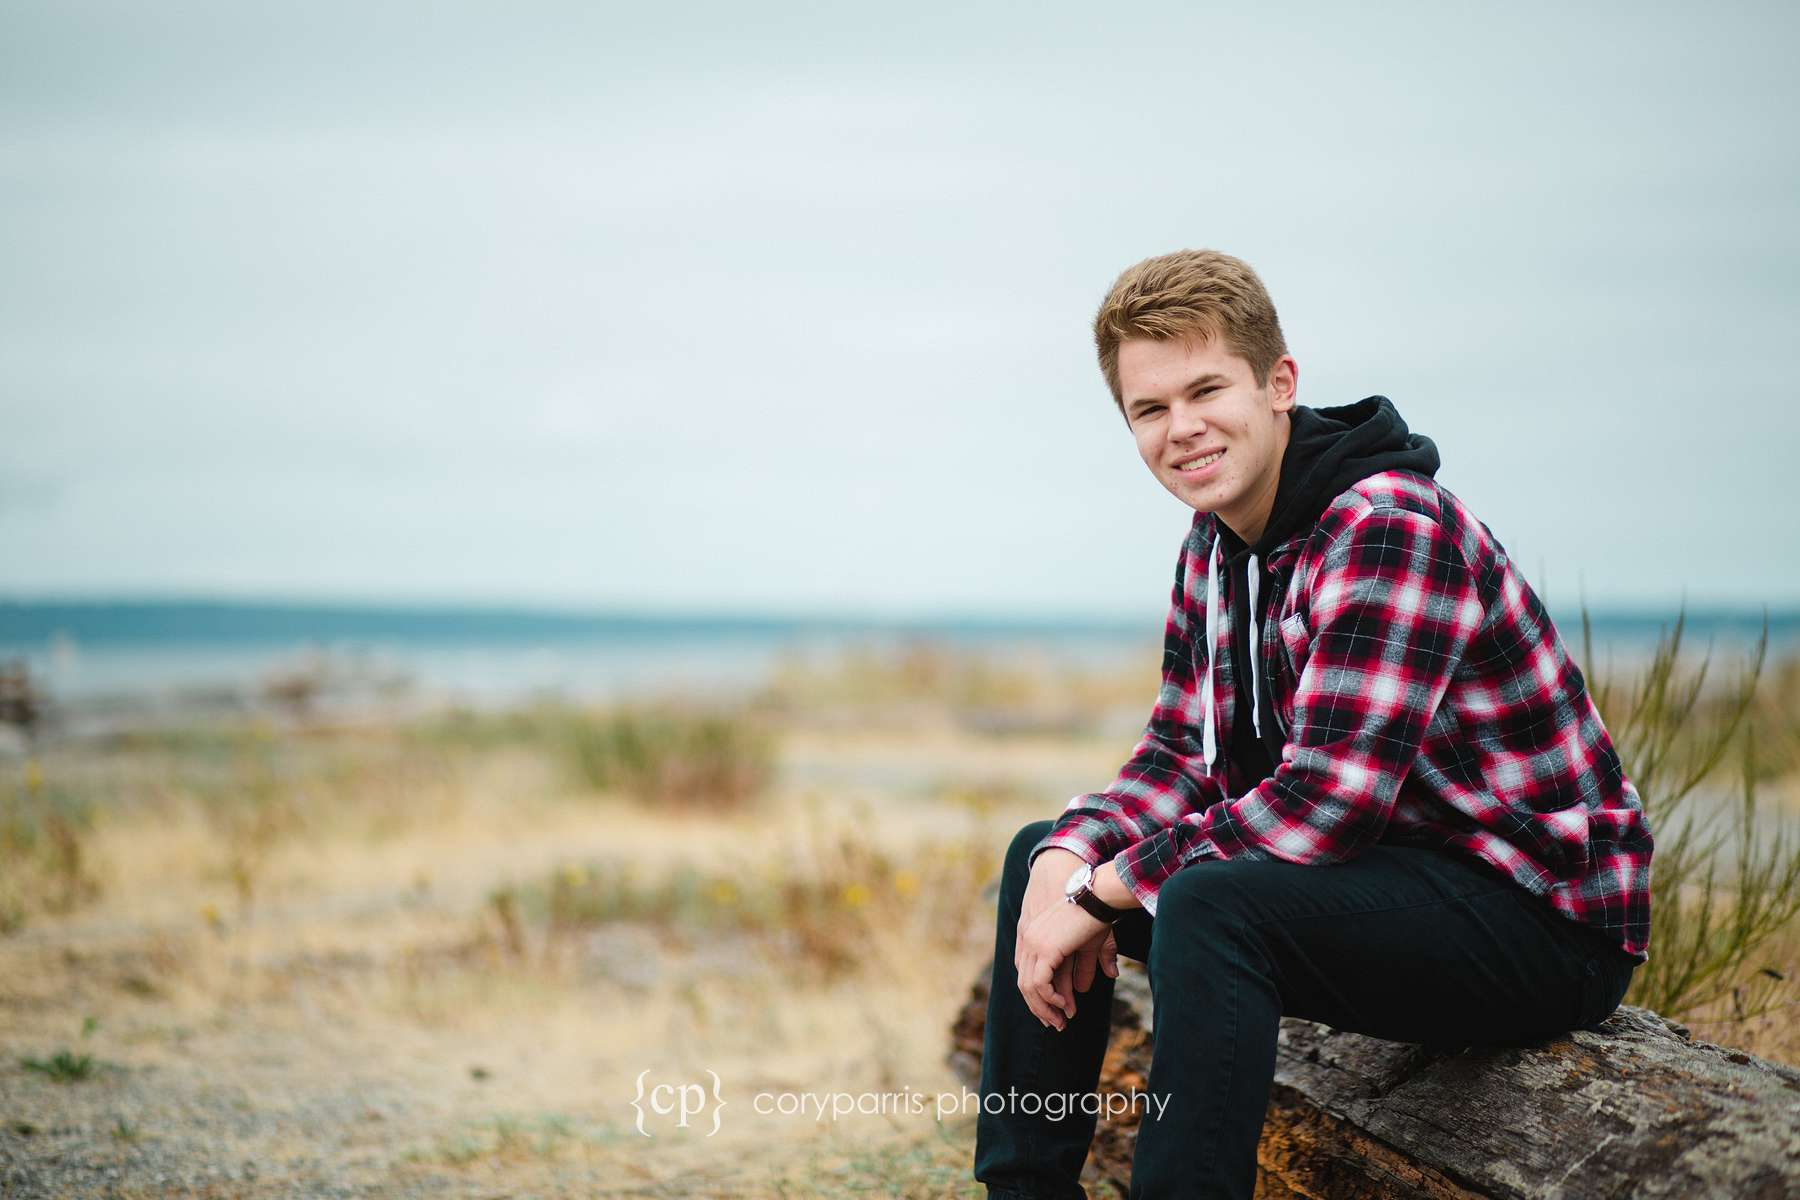 156-edmonds-beach-senior-portraits.jpg